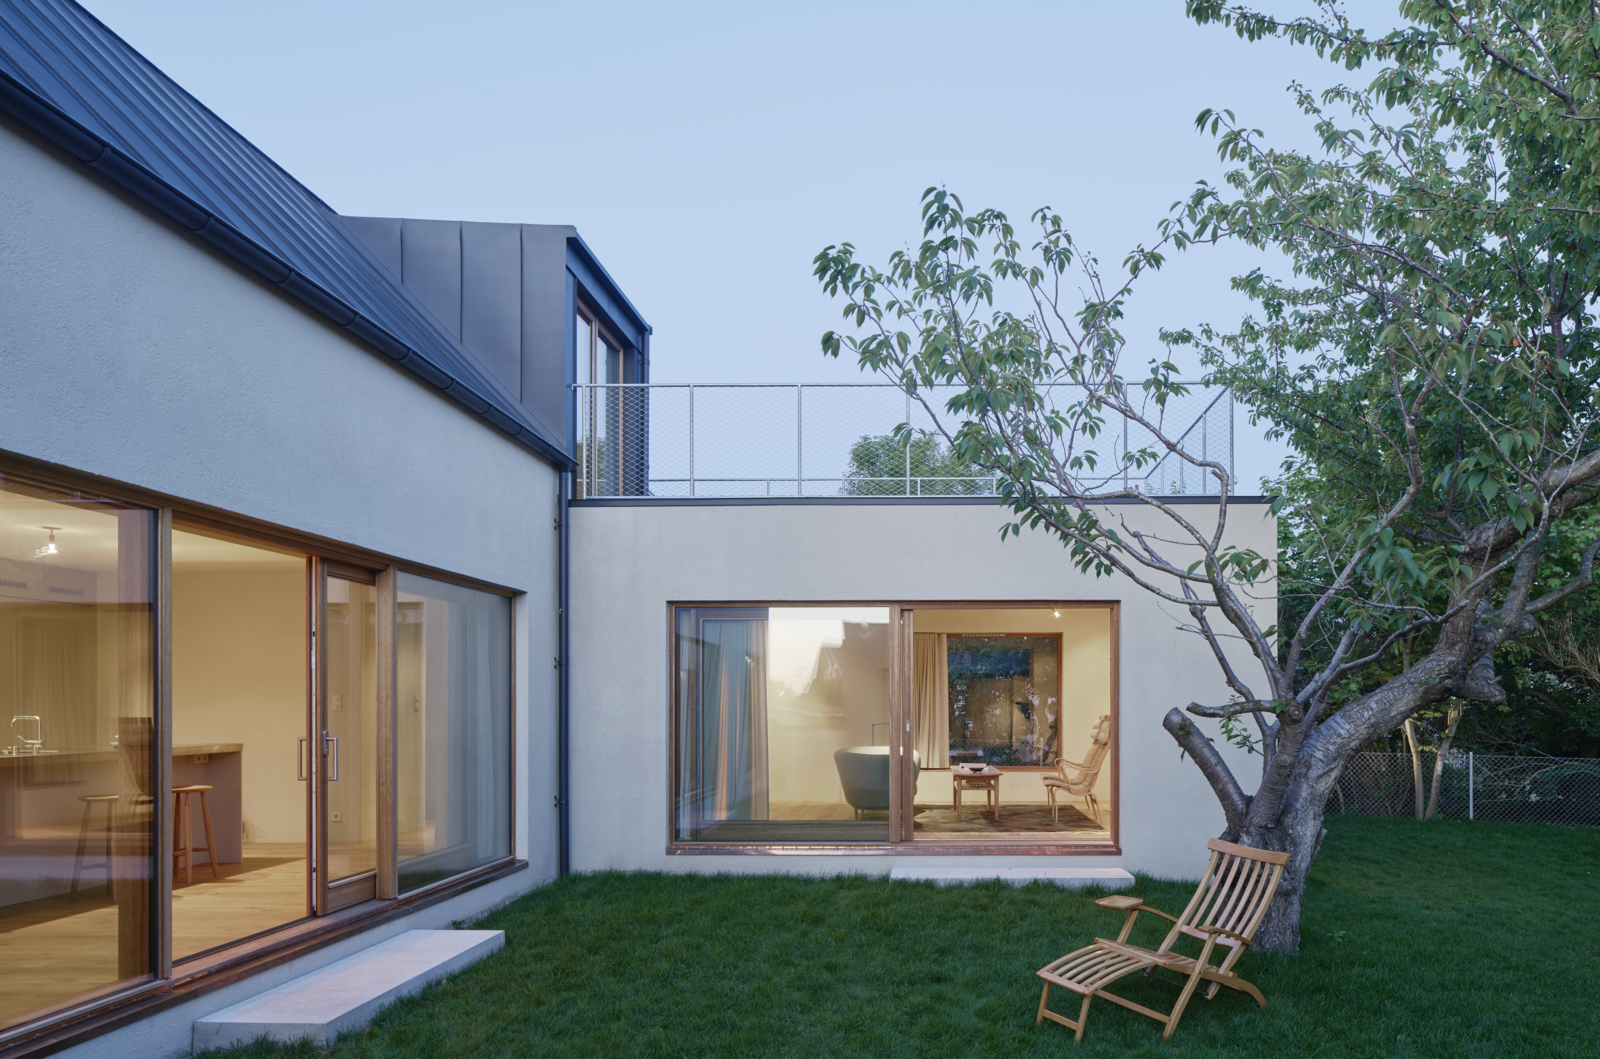 Outdoor, Back Yard, Trees, and Grass  Photo 10 of 12 in Sleek Scandinavian Design Permeates a Family's Summer House in an Old Fishing Village